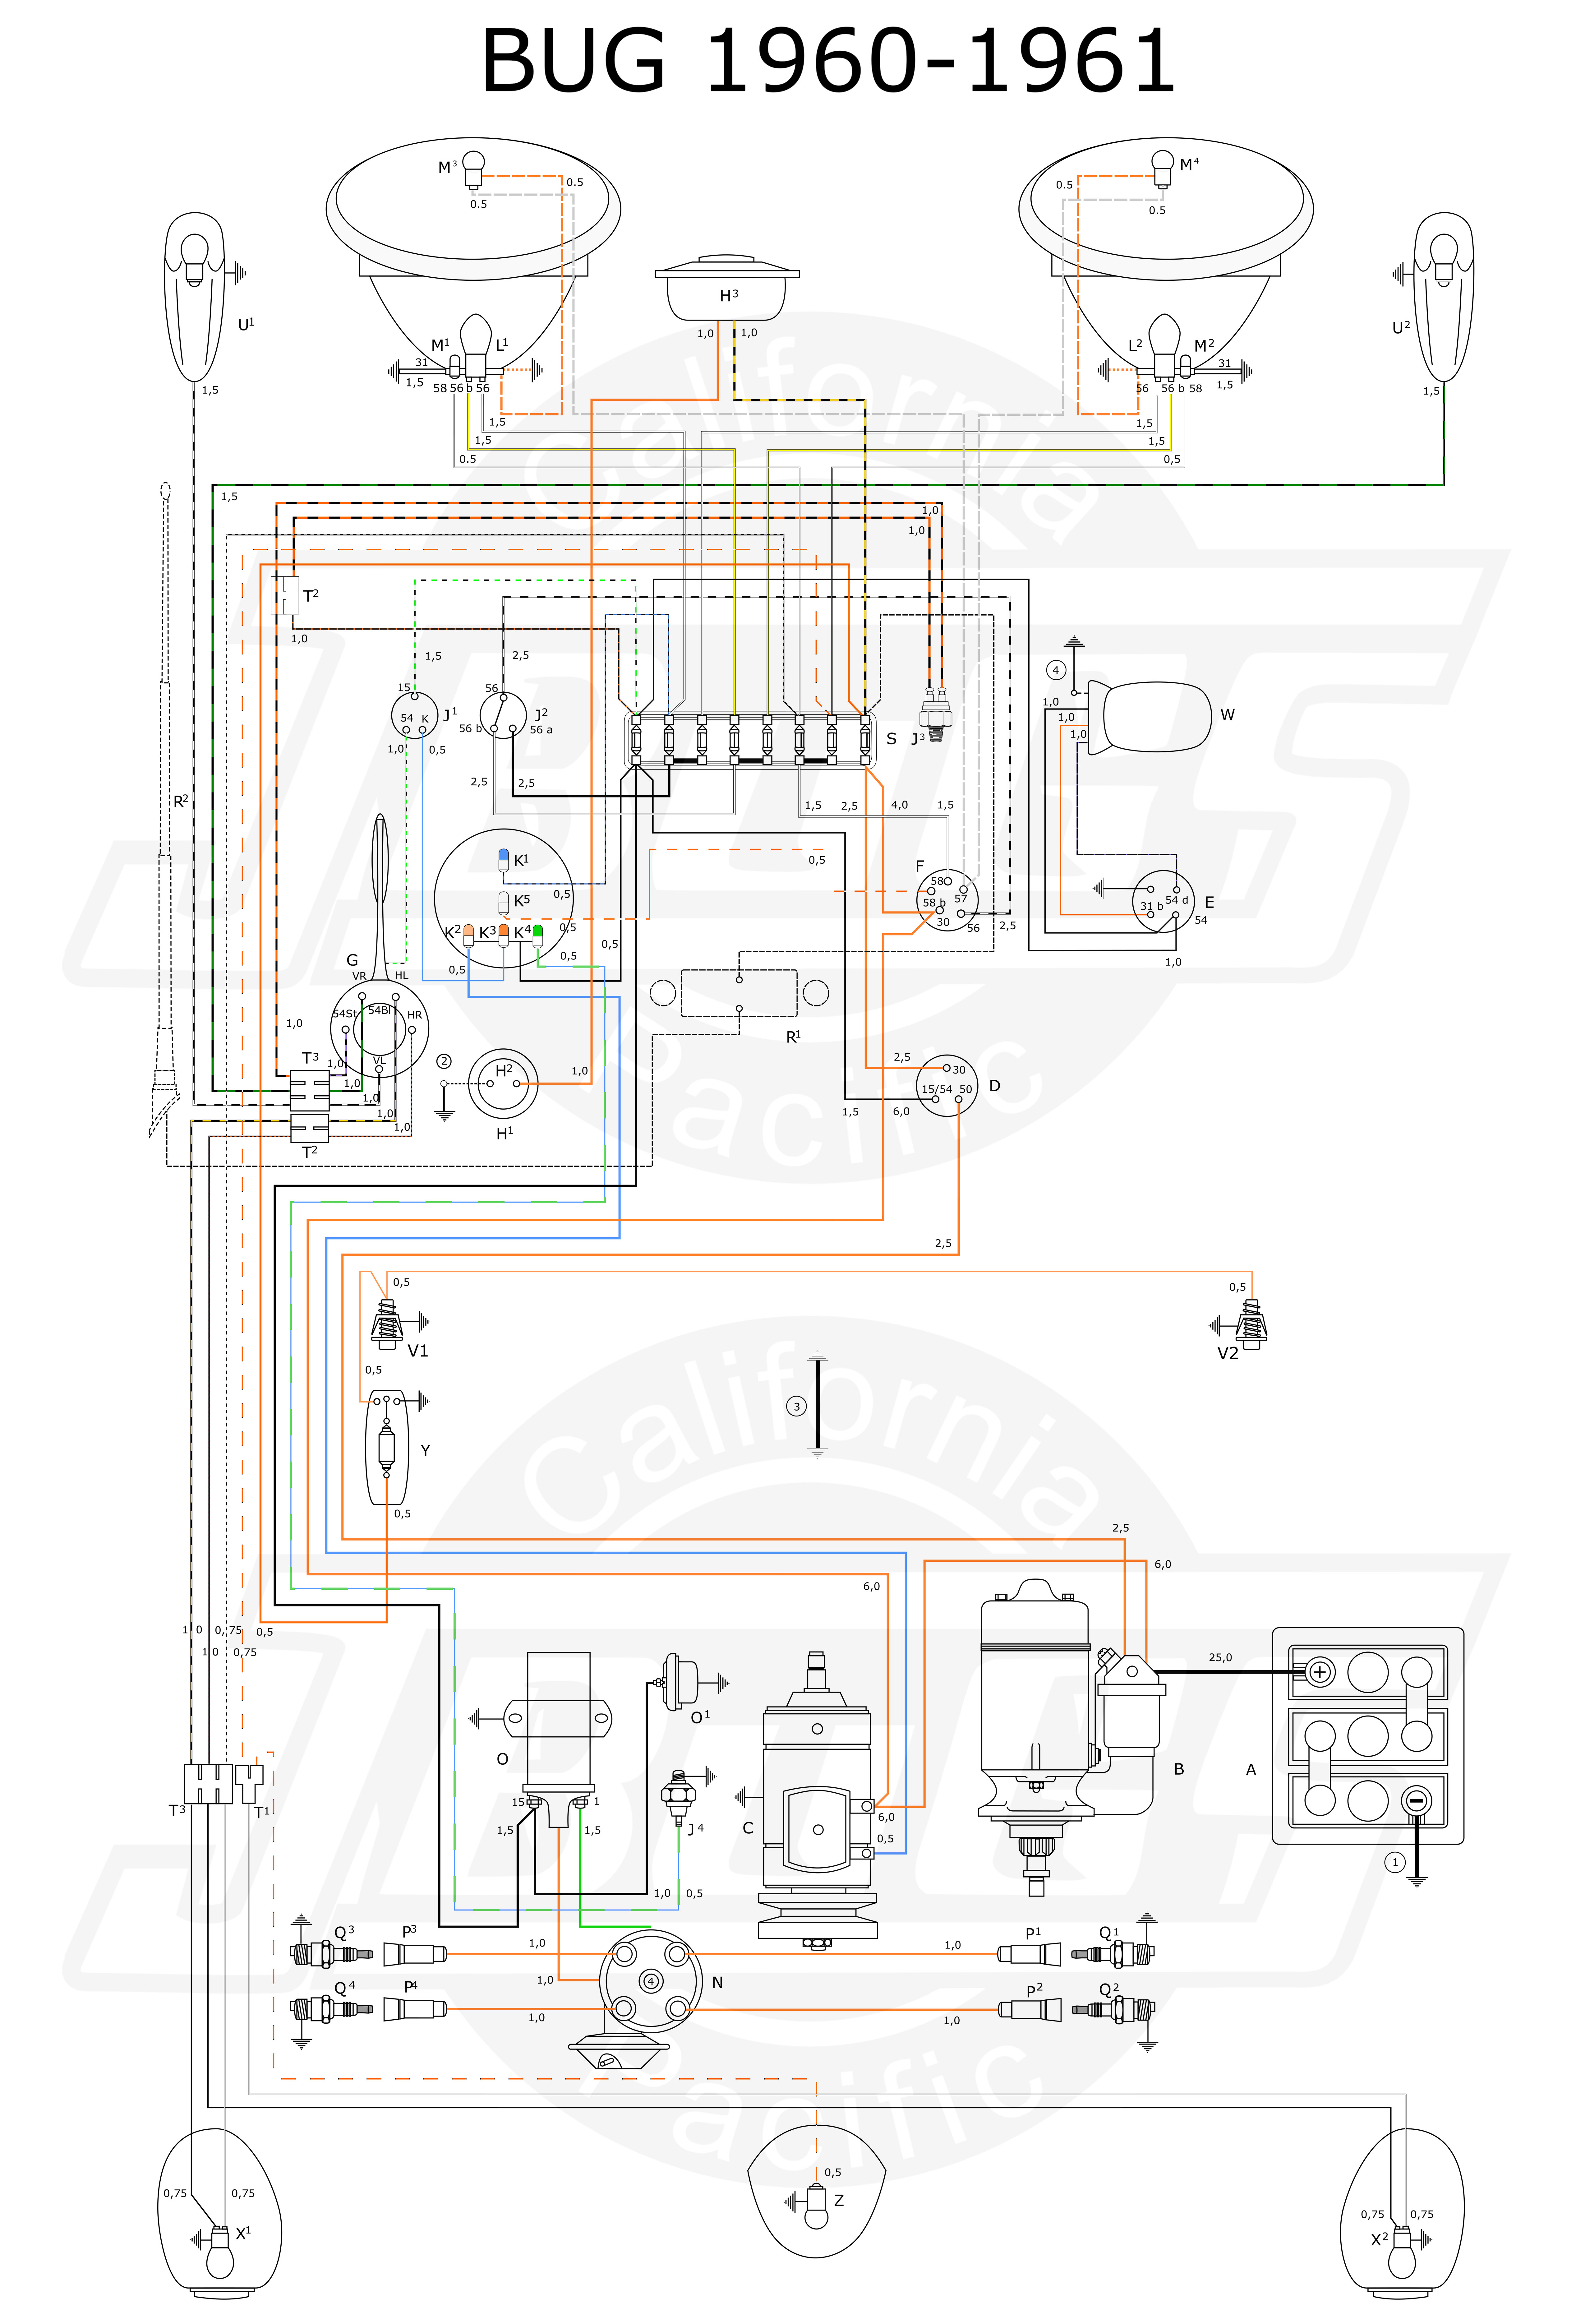 VW Bug 1960 61 Wiring Diagram 77 beetle wiring diagram 1974 vw super beetle wiring diagram Wiring Harness Diagram at honlapkeszites.co